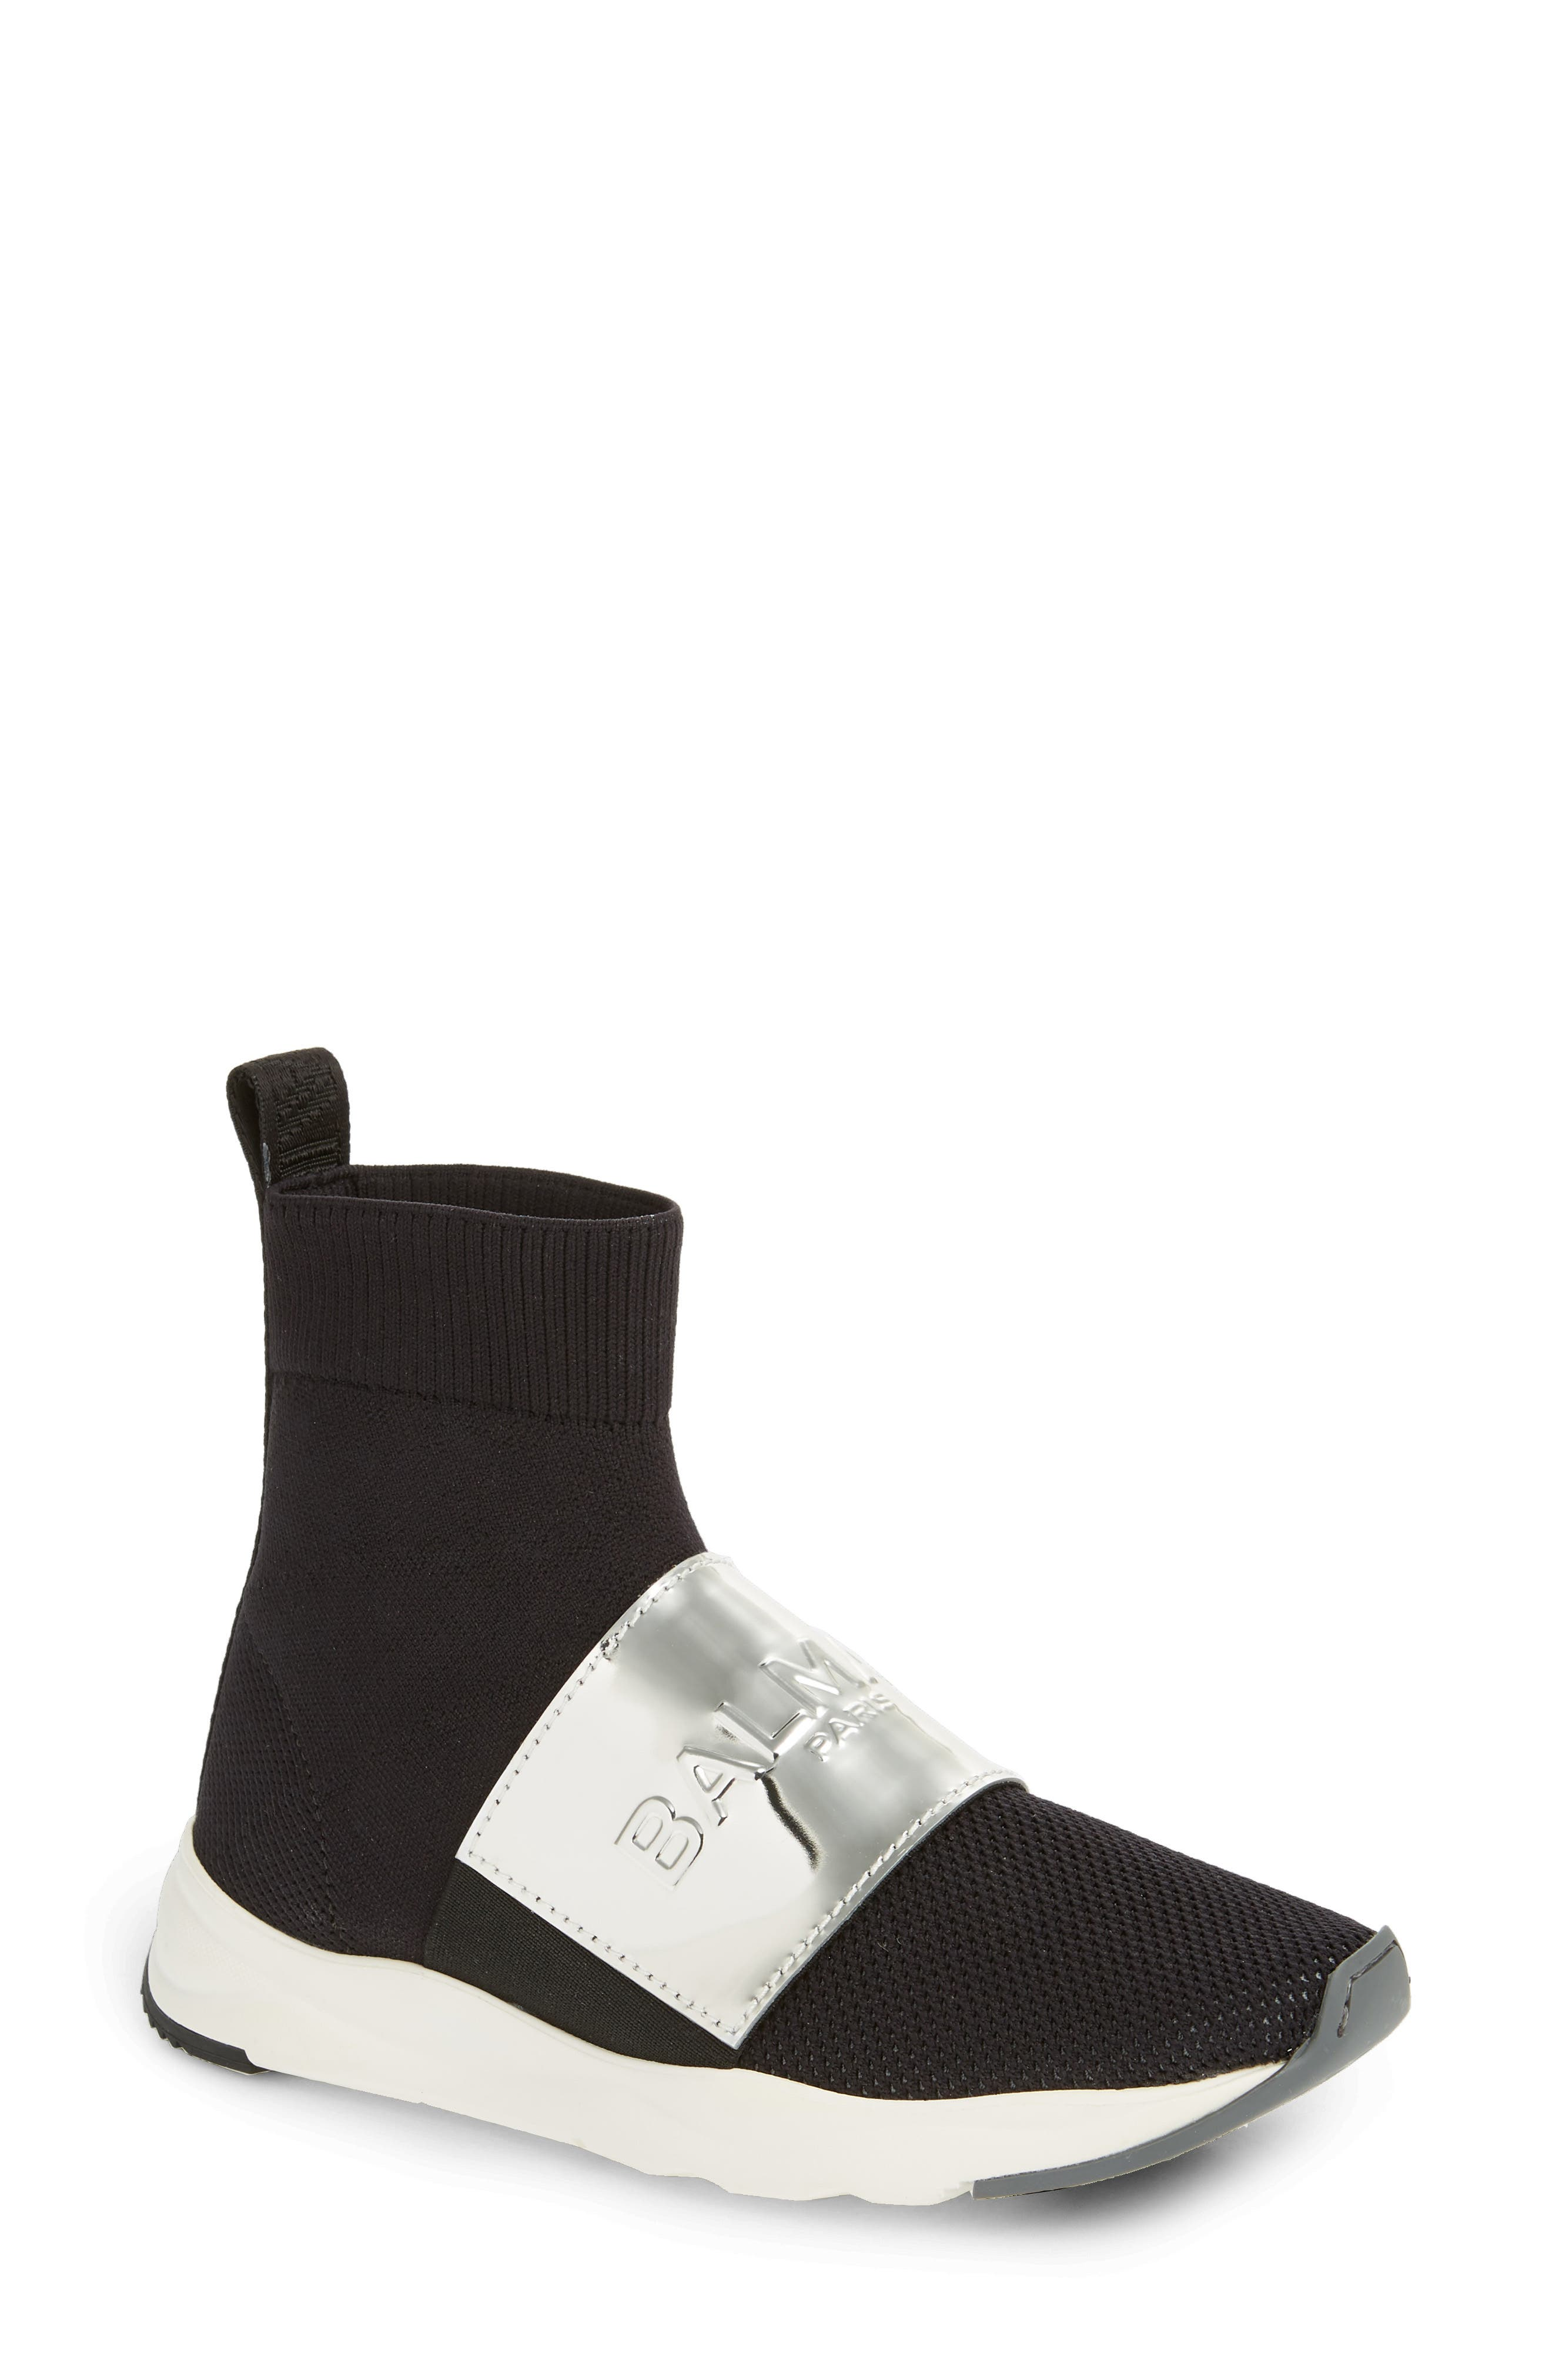 Cameron Knit Sneaker Boot, Main, color, BLACK/ SILVER